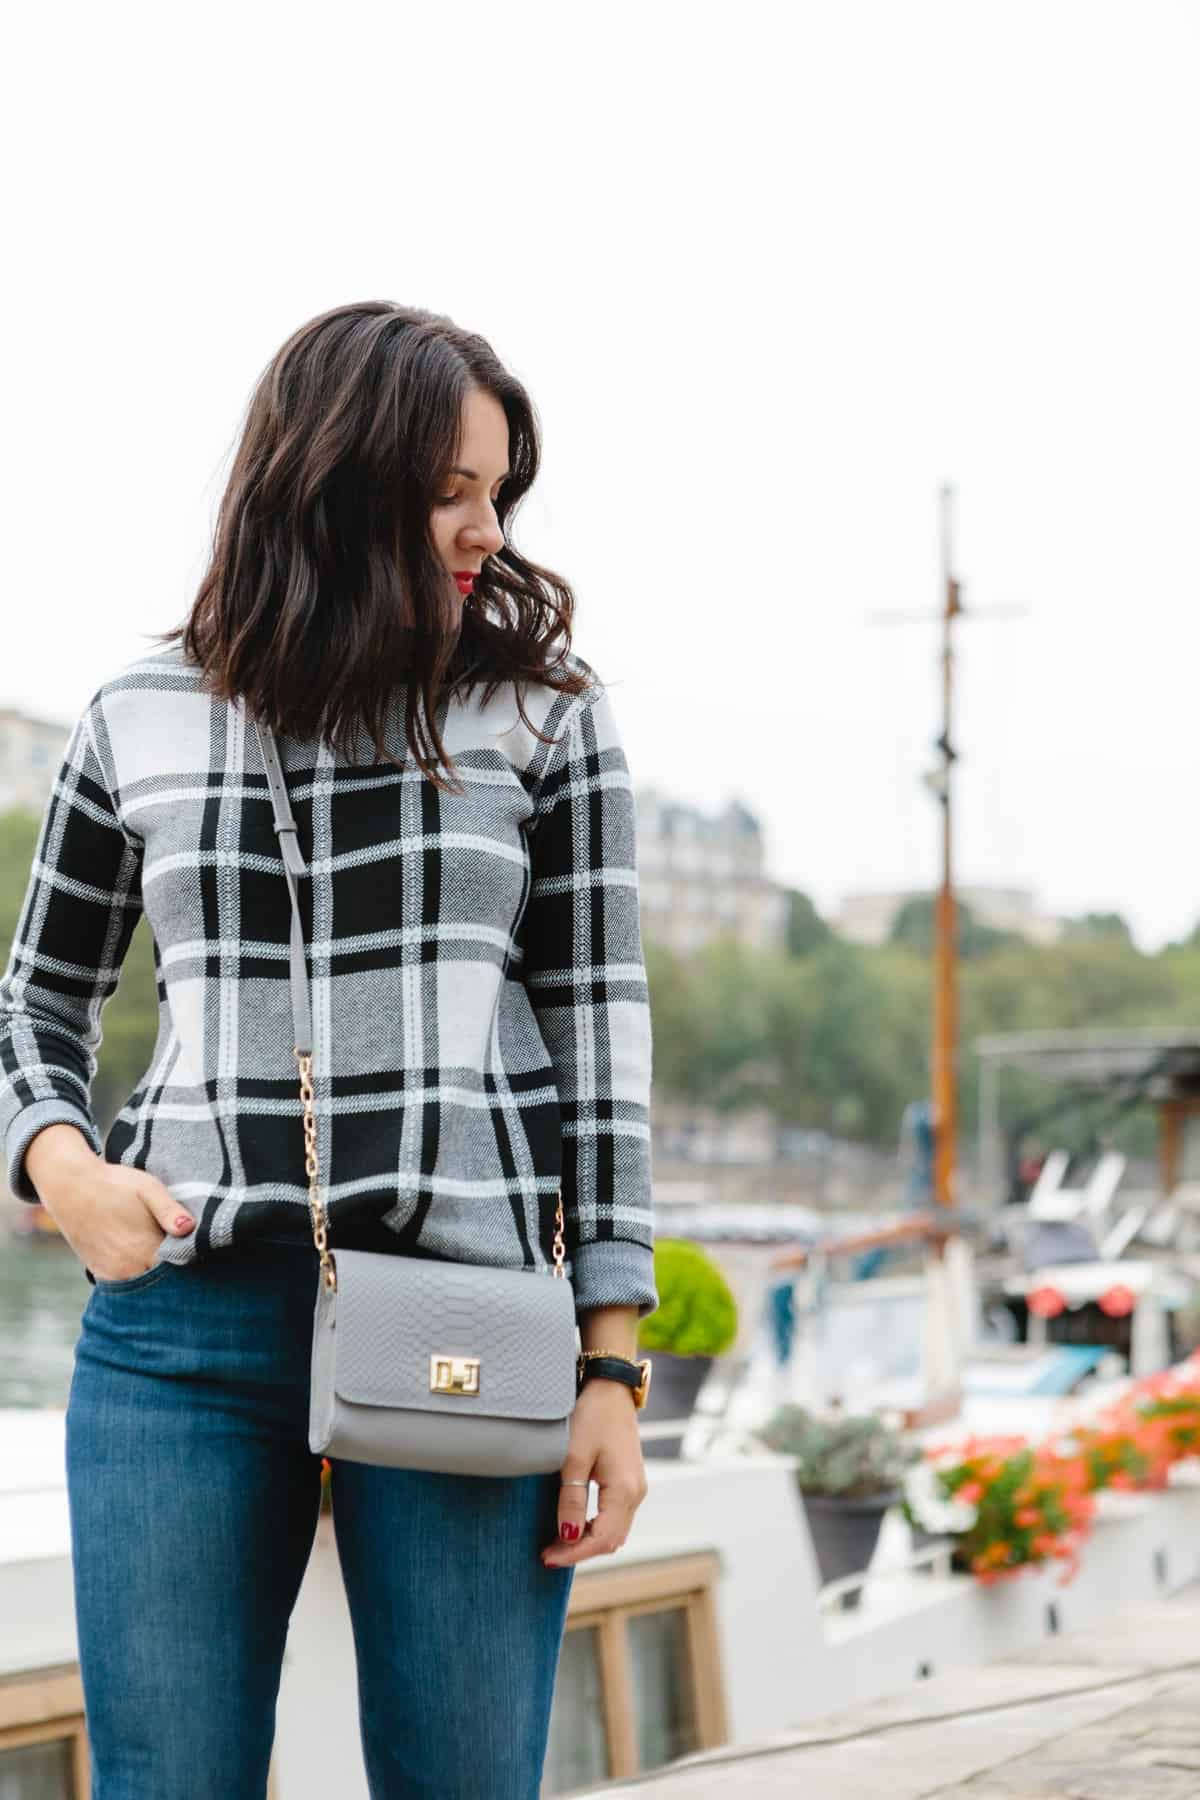 Plaid sweater and Paris Seine in the background